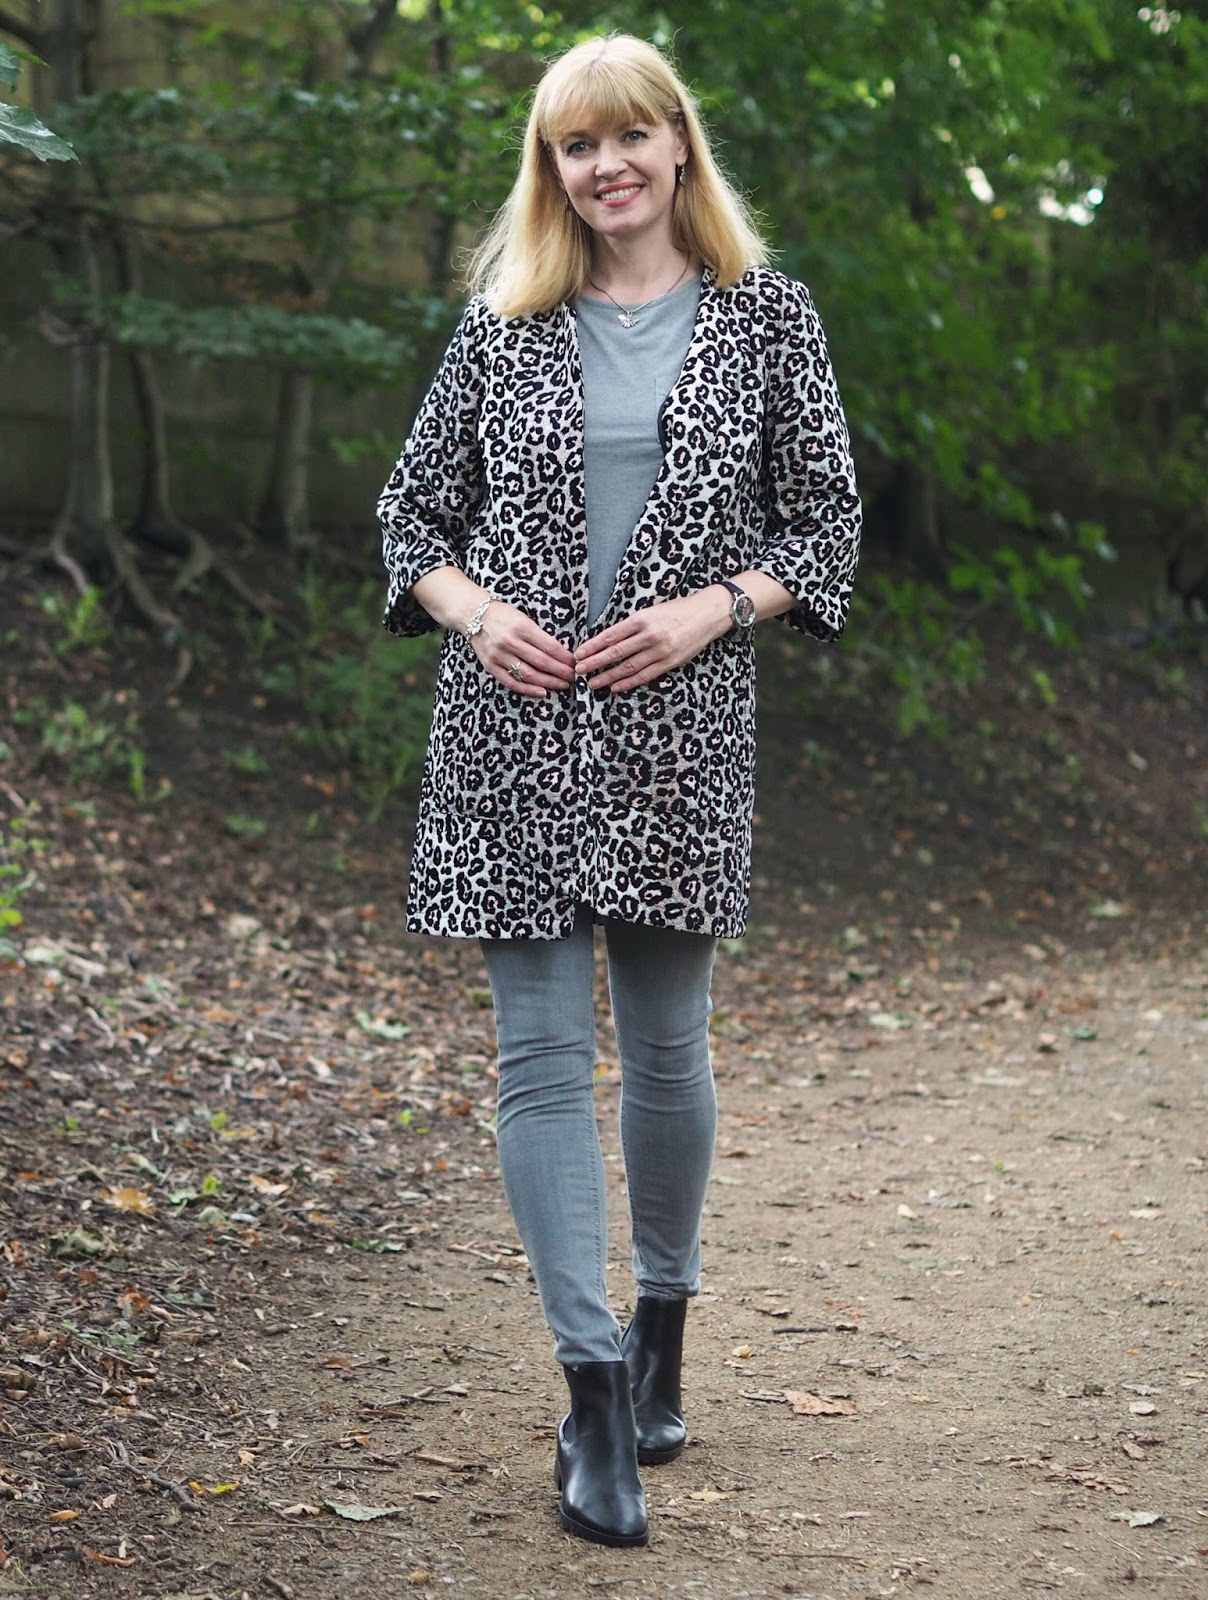 Kaleidoscope Leopard print jacket, grey jeans and black leather chelsea boots